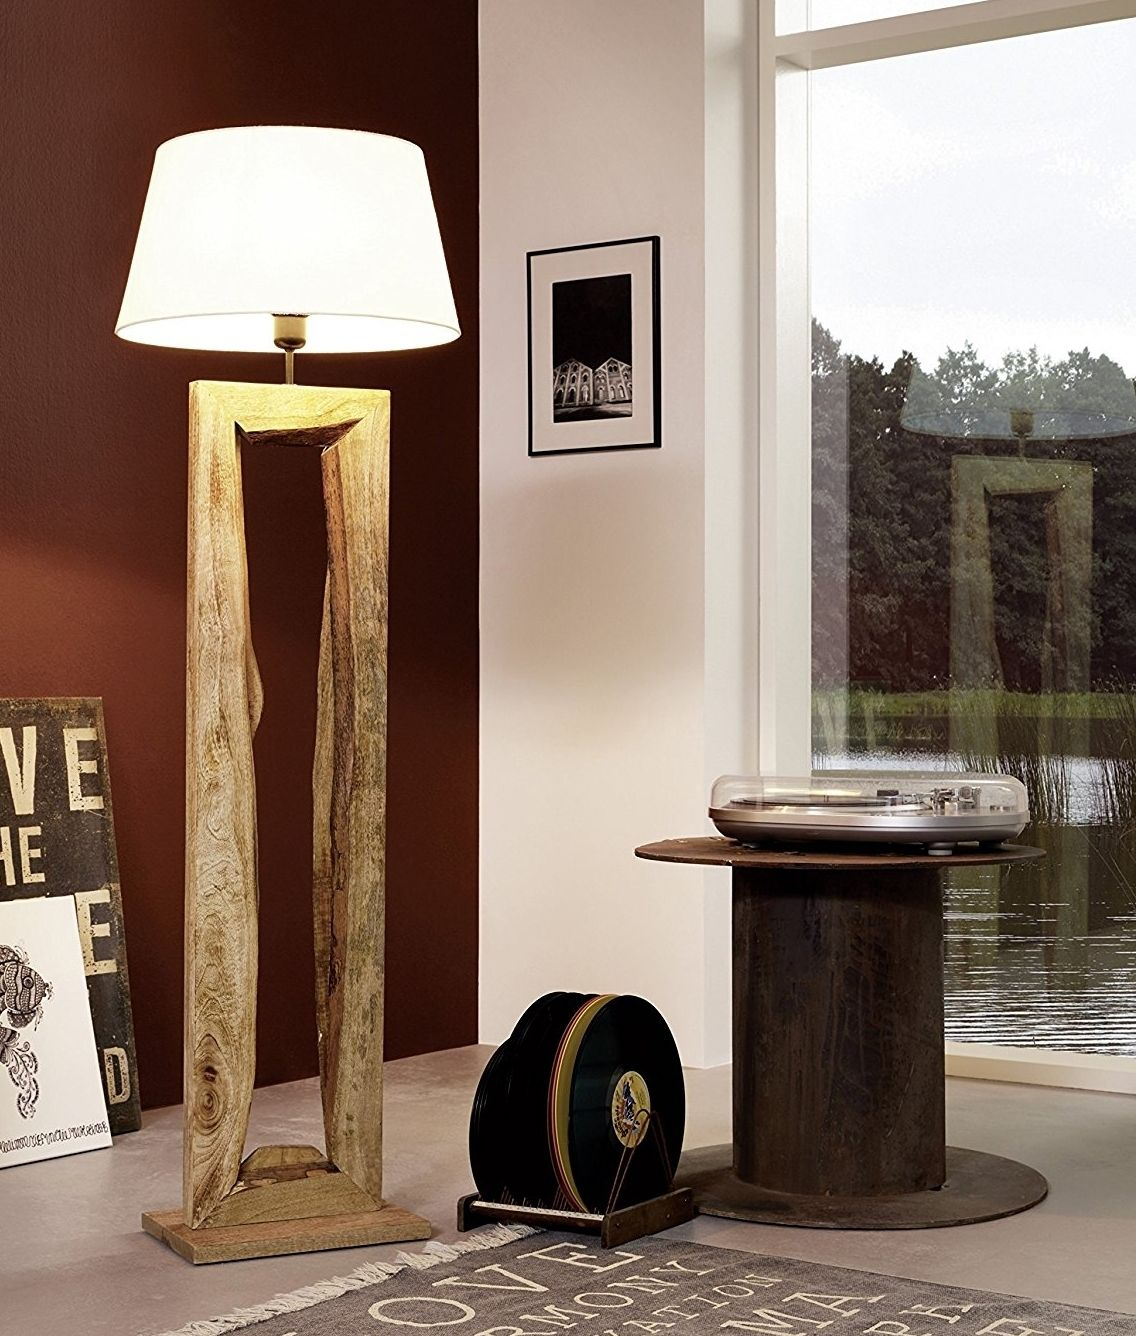 Rustic Driftwood Wooden Floor Lamp With Shade Wooden Lamps Design Wooden Floor Lamps Diy Floor Lamp